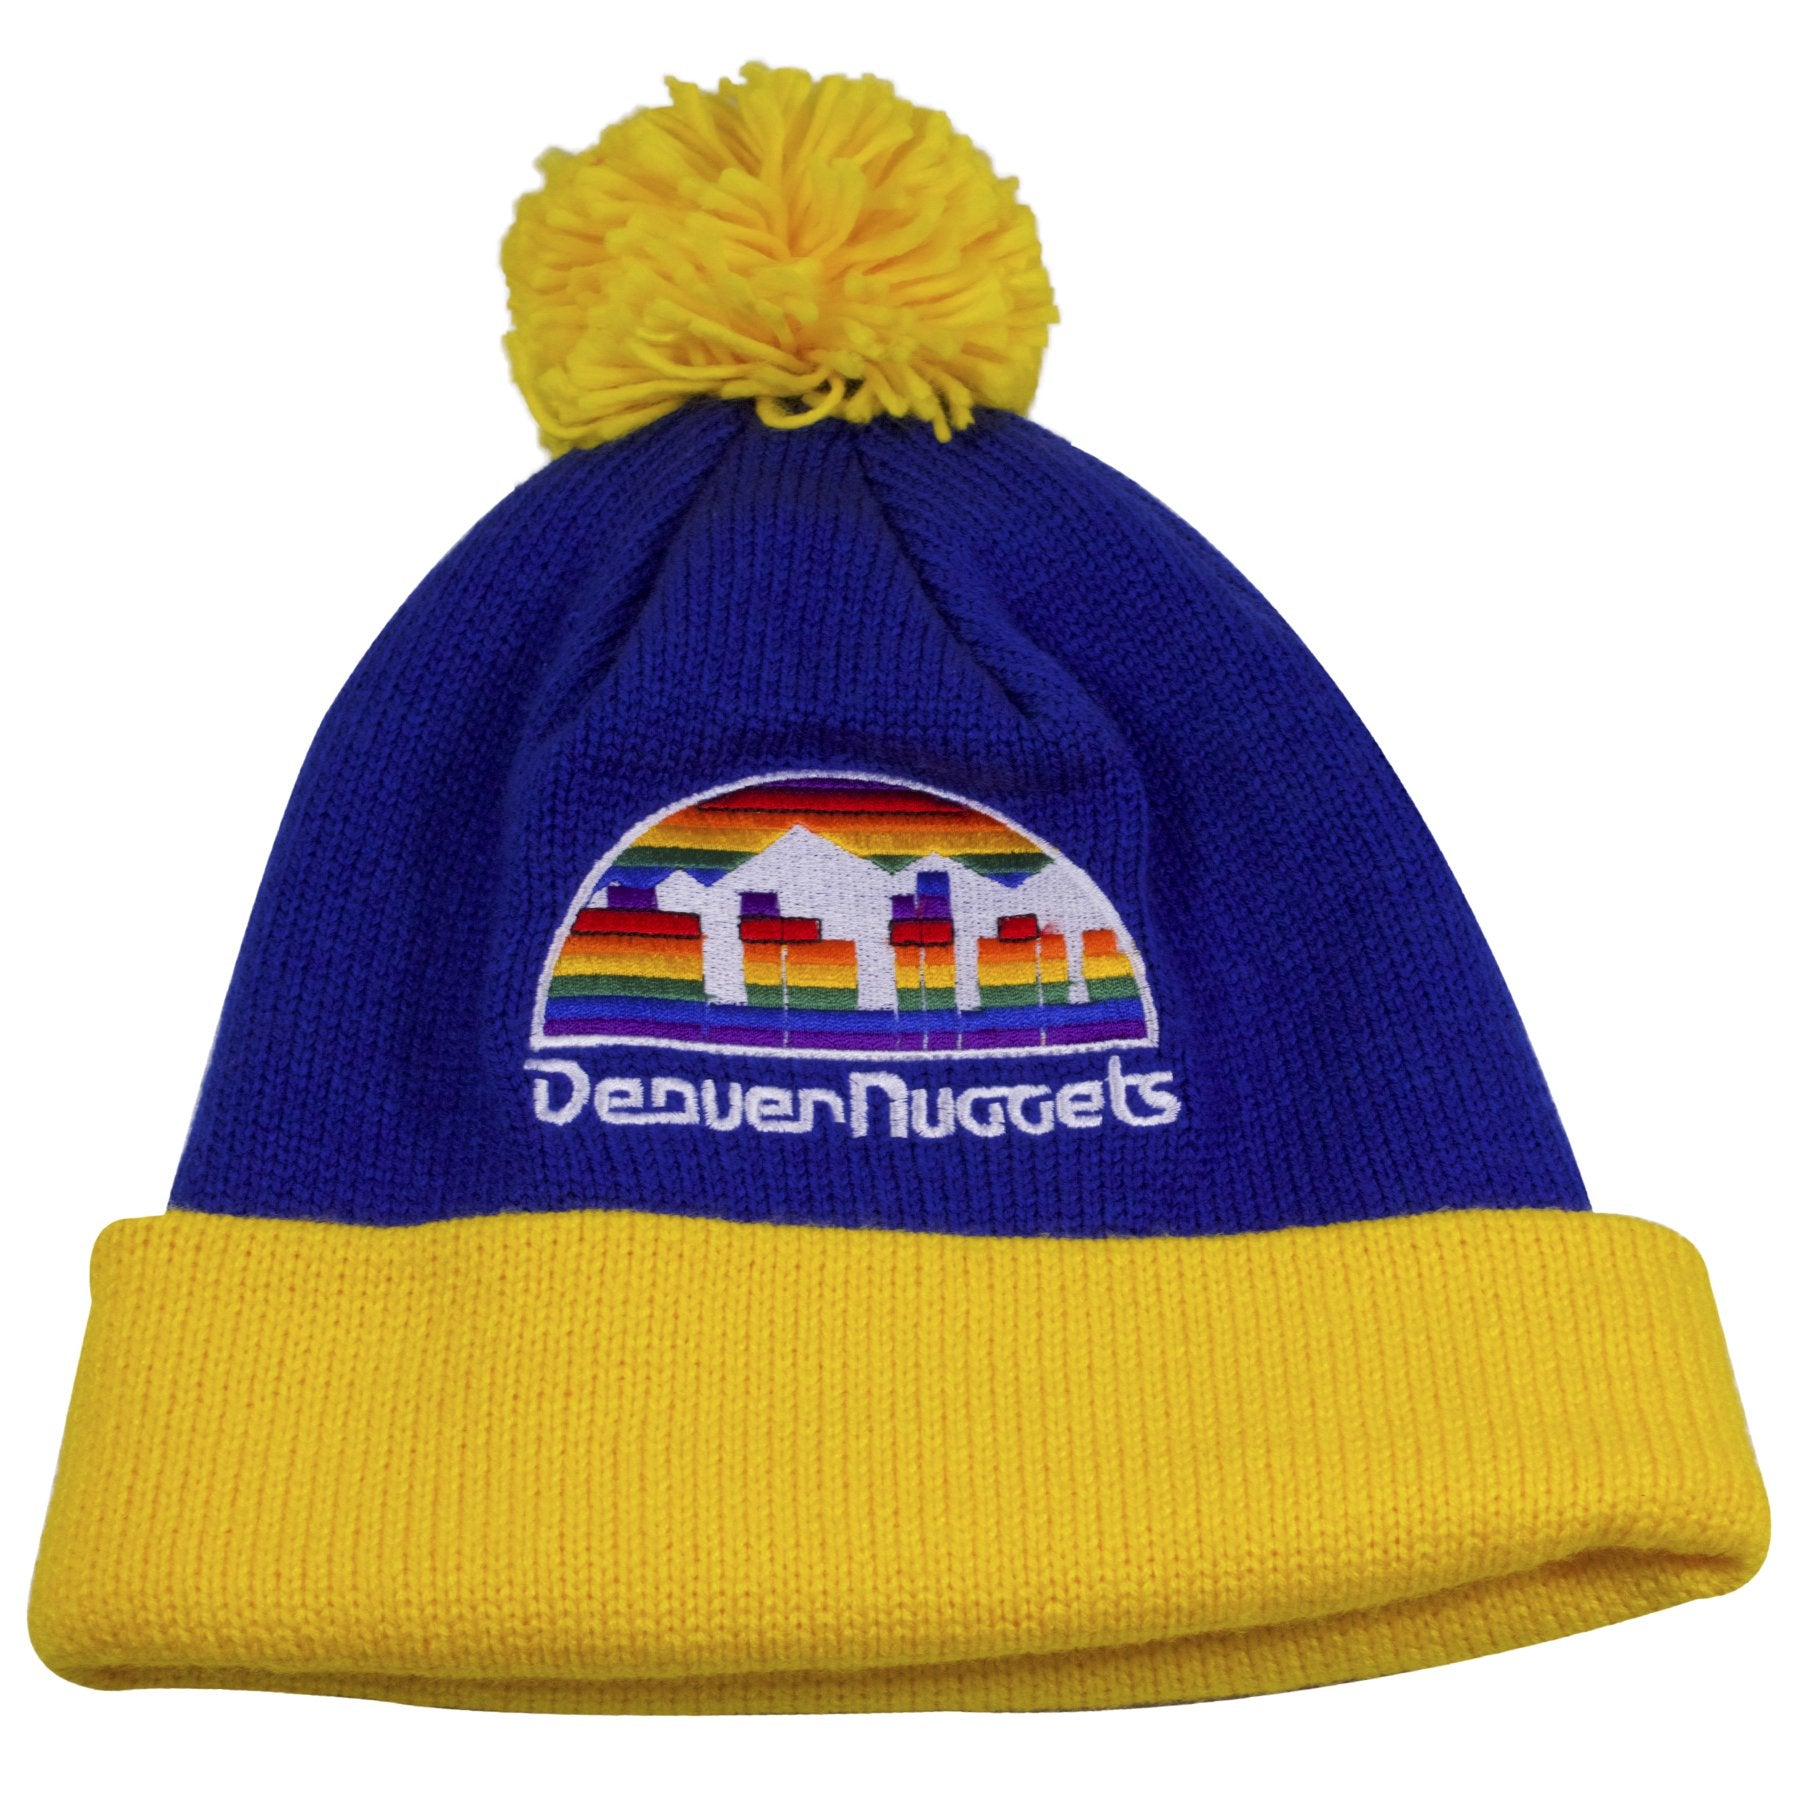 c0ef7284a02f6f ... top quality on the front of the denver nuggets vintage blue pom beanie  is the denver